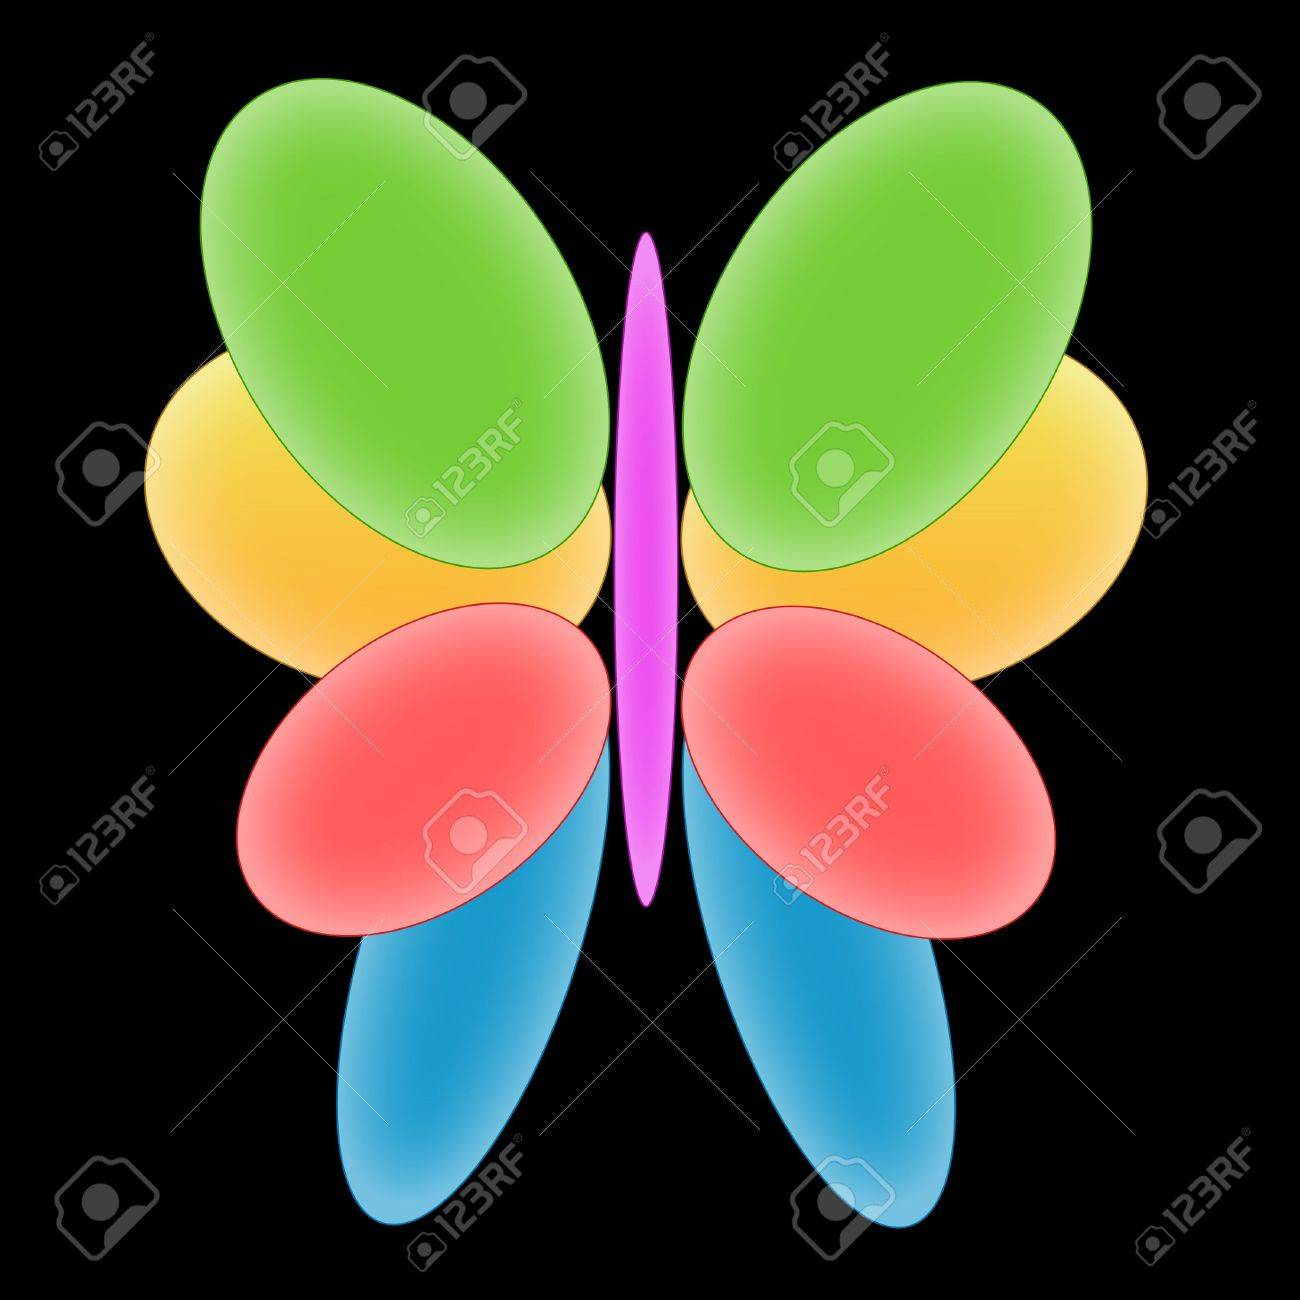 Illustration of the colourful butterfly on a black background Stock Photo - 6026606